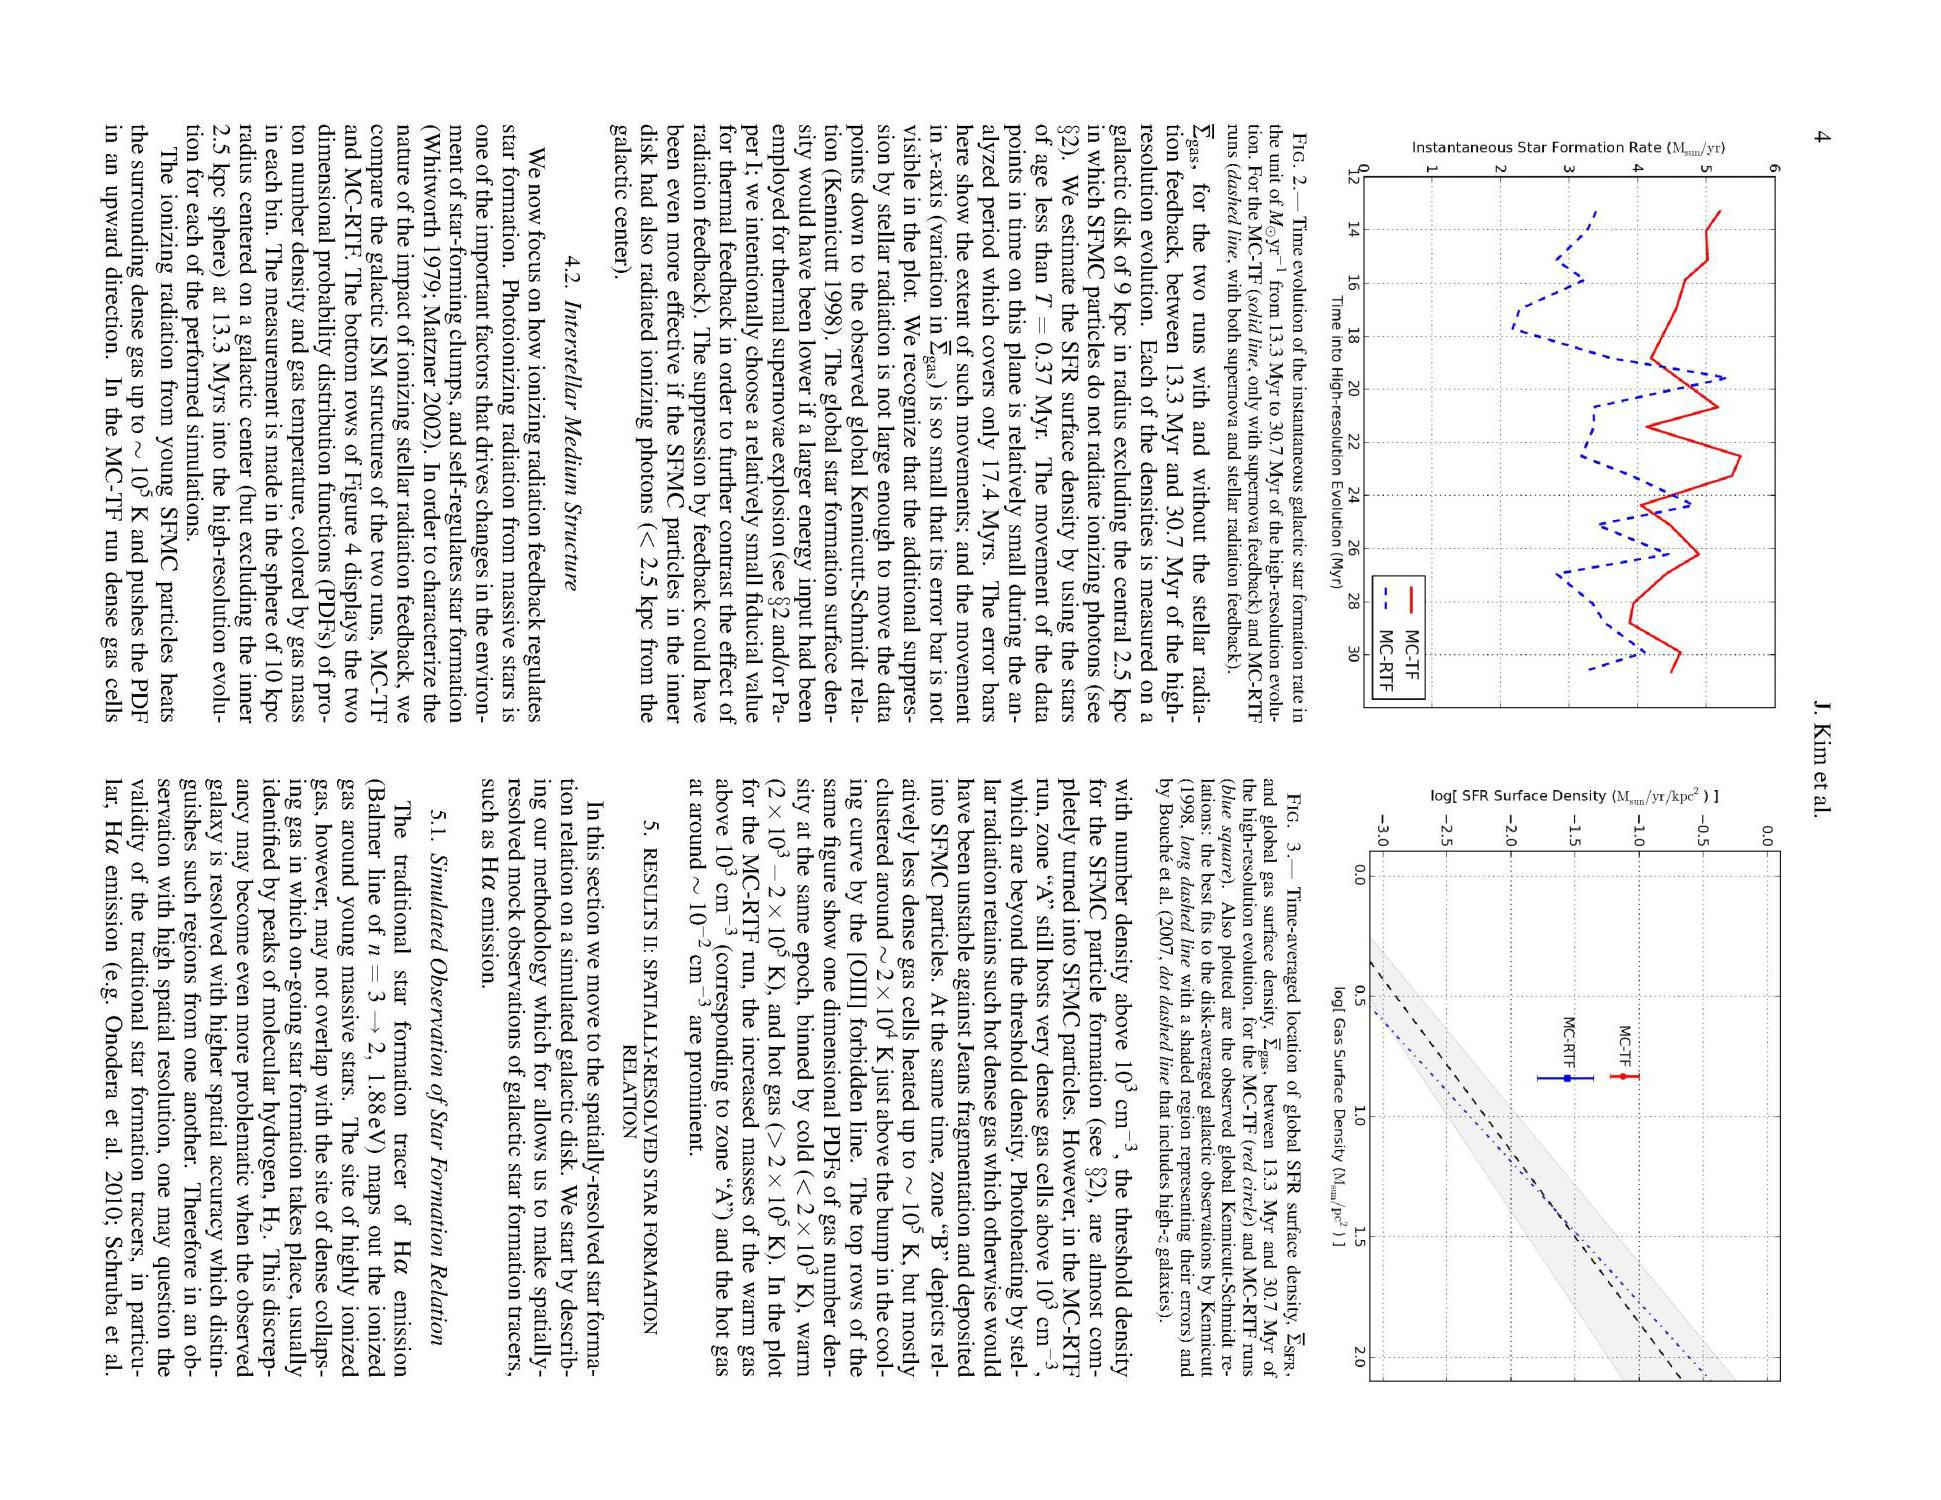 Dwarf Galaxies with Ionizing Radiation Feedback II: Spatially-resolved Star Formation Relation                                                                                                      [Sequence #]: 4 of 16